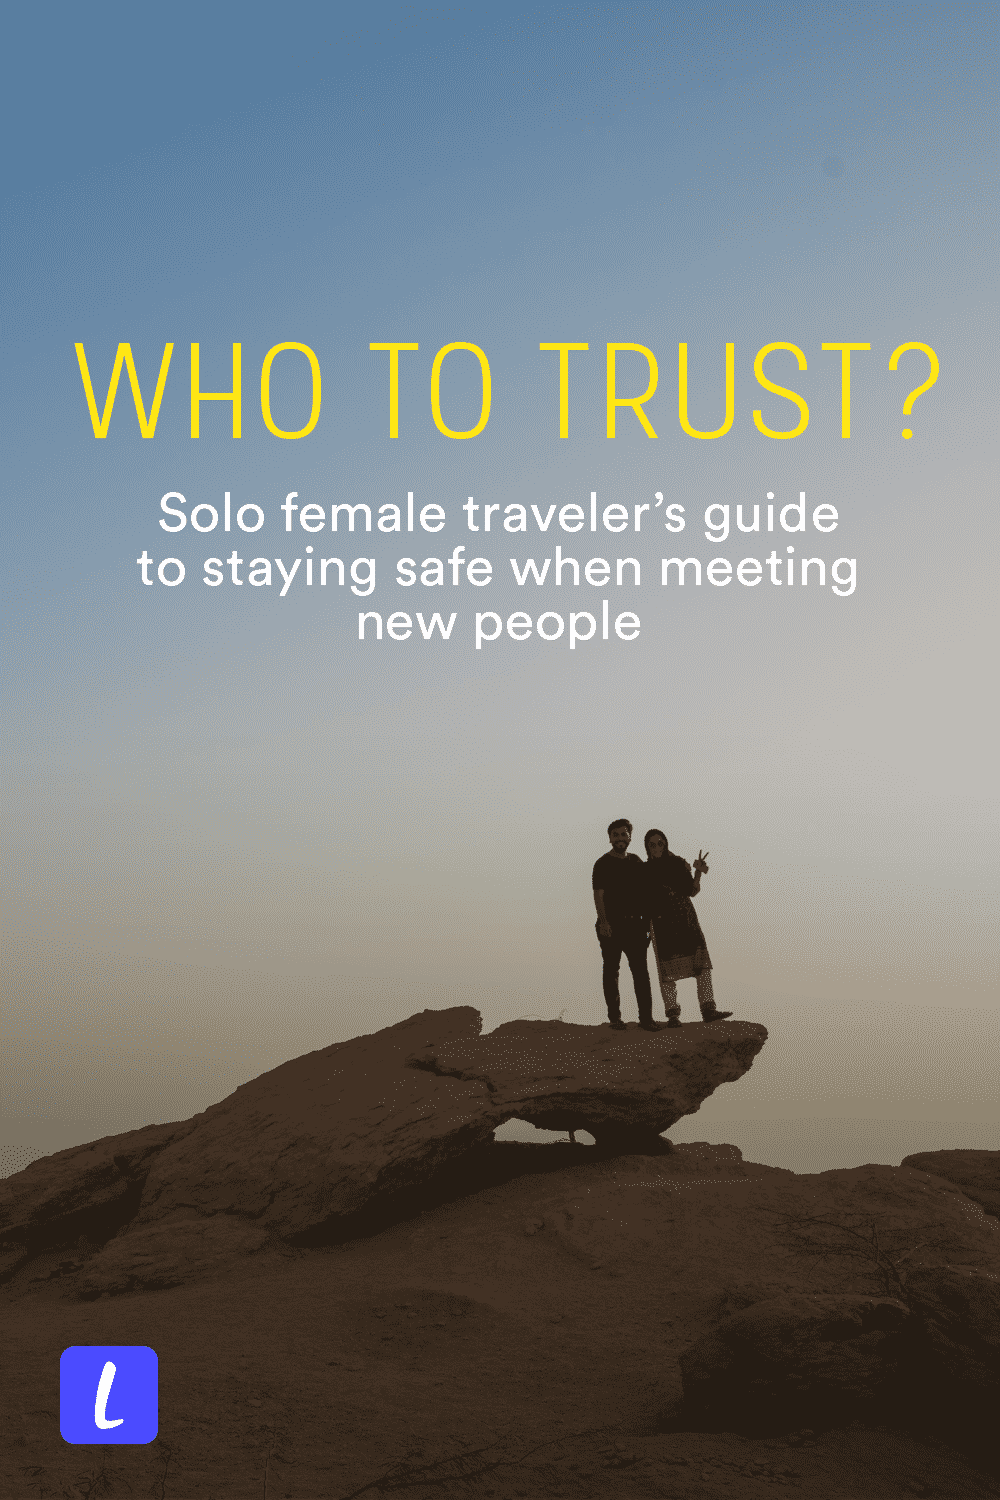 How can female travelers tell who they can trust and who might be unsafe? How to avoid harassment and meet locals who will keep you safe? Here's a guide from a solo female traveler who's dealt with men—good and bad—all over the world.